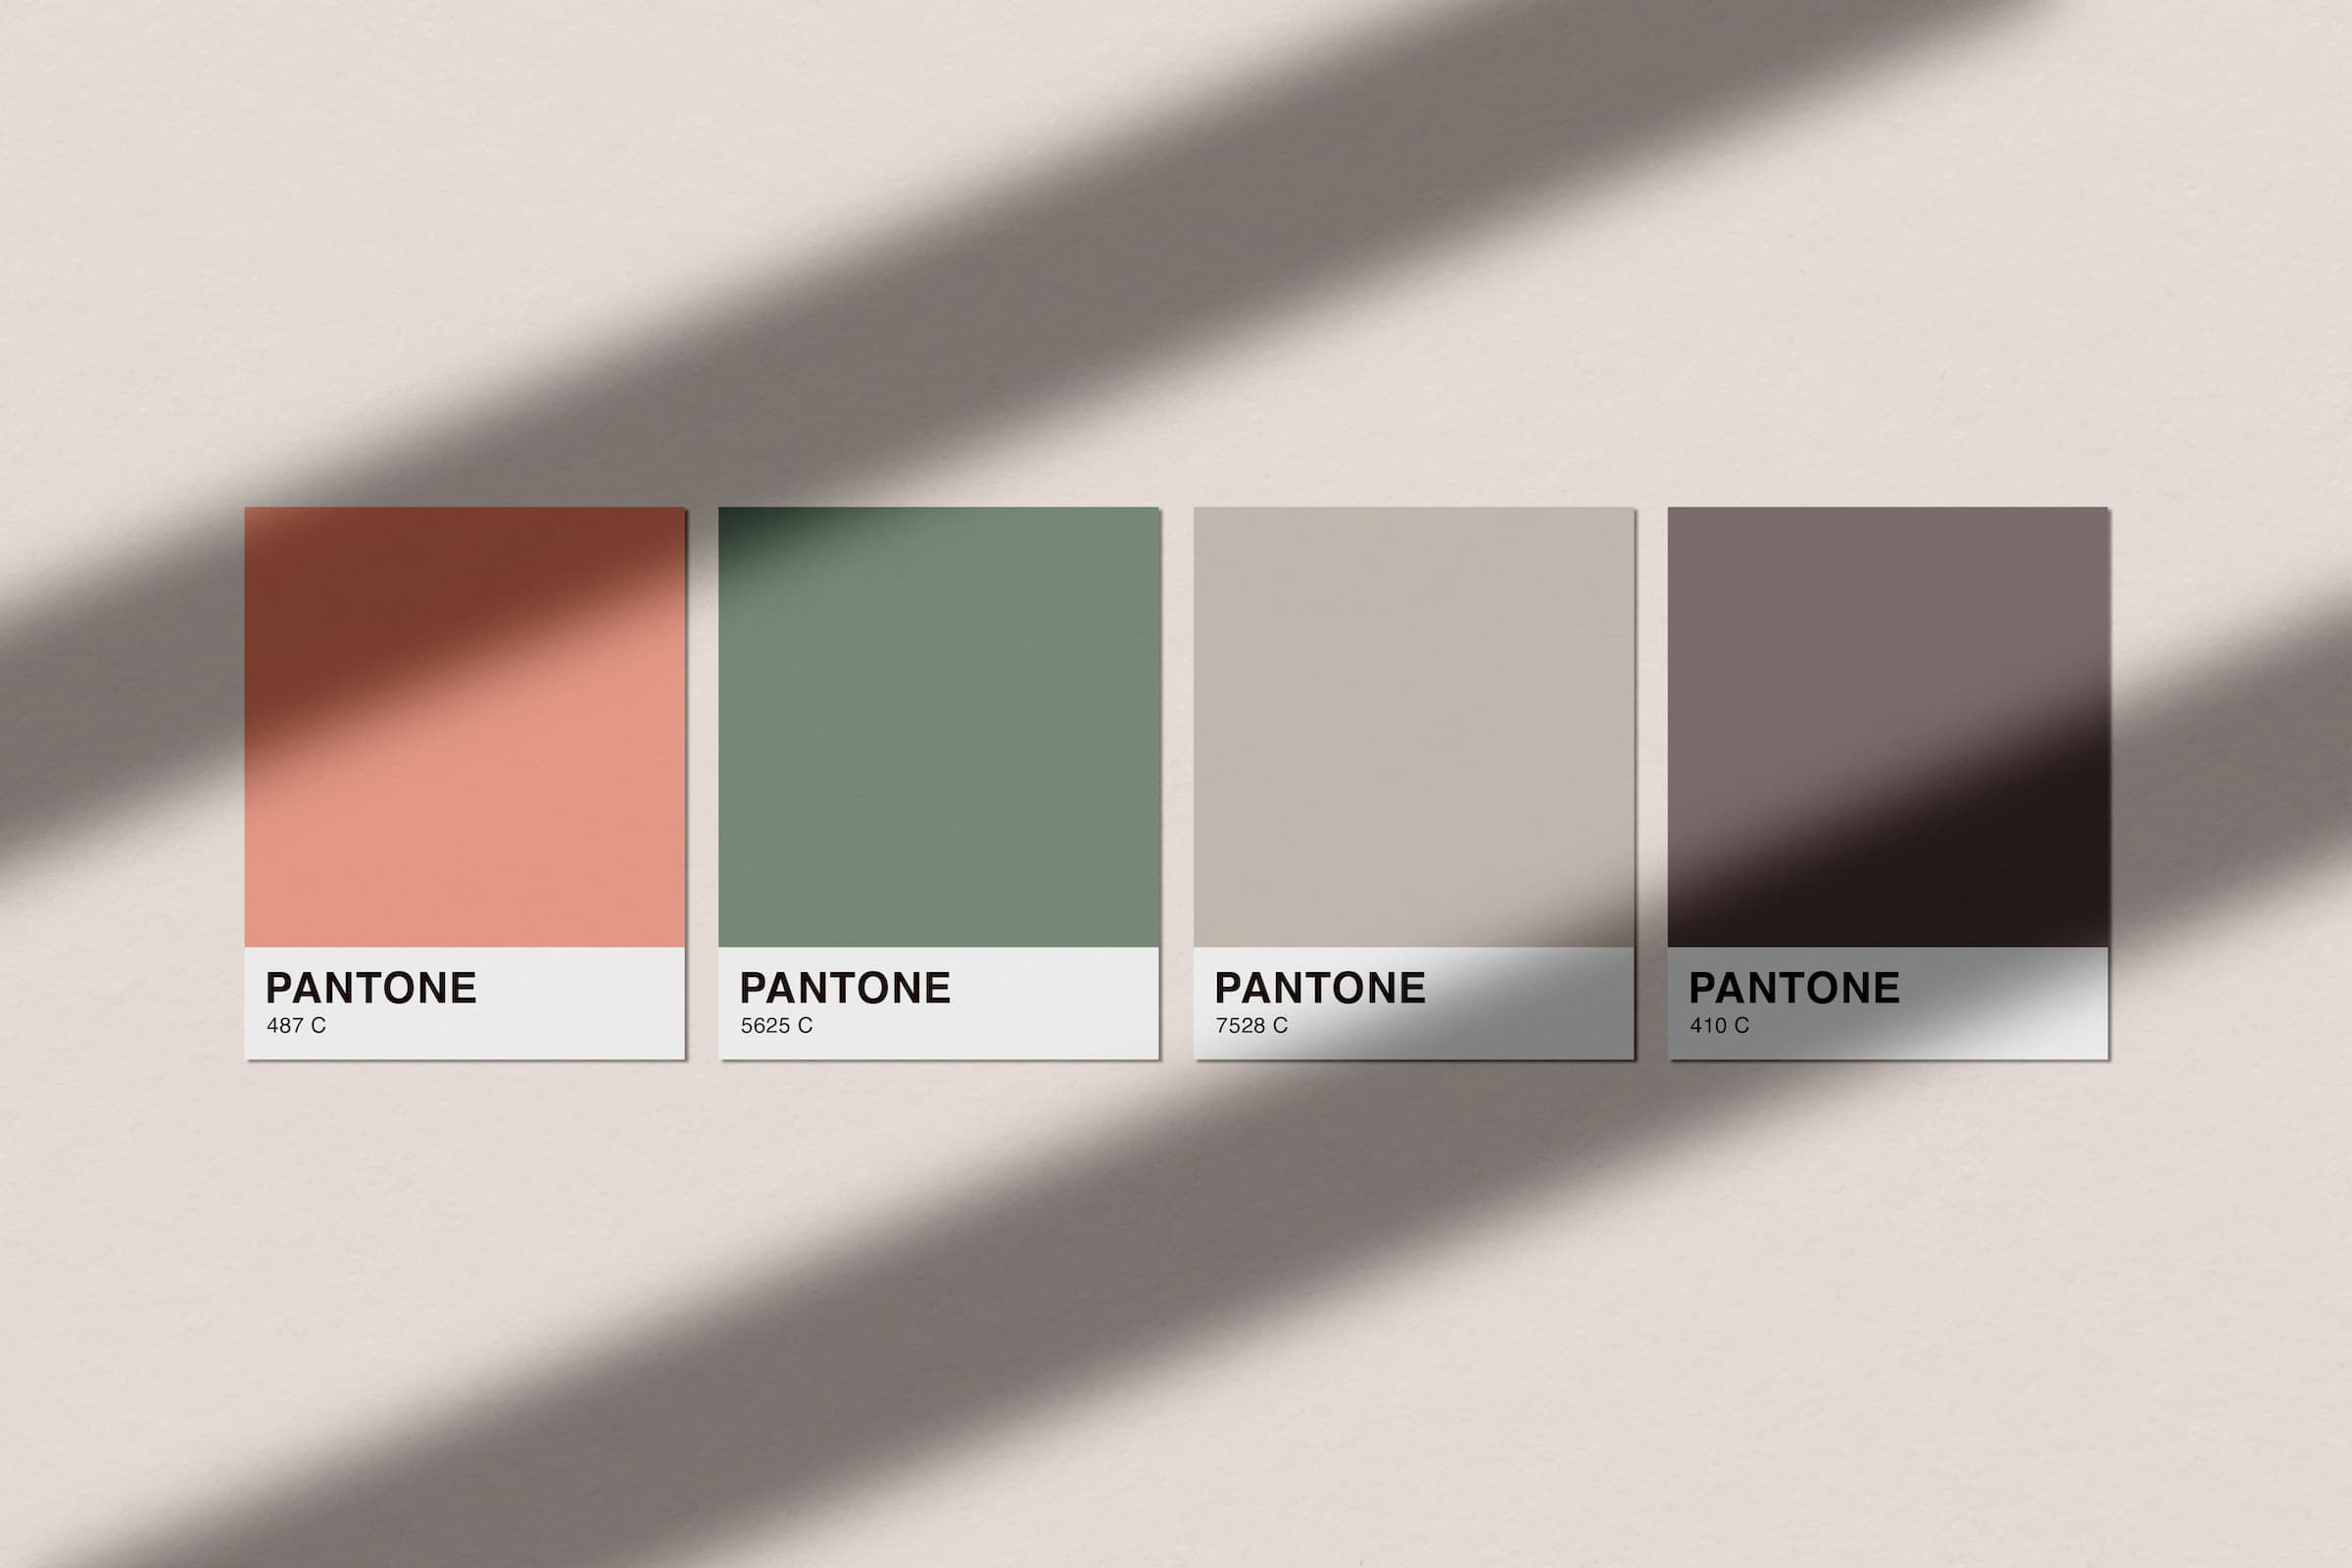 PANTONE color swatches for Peachtree, Pomme, Portico, and Parque.